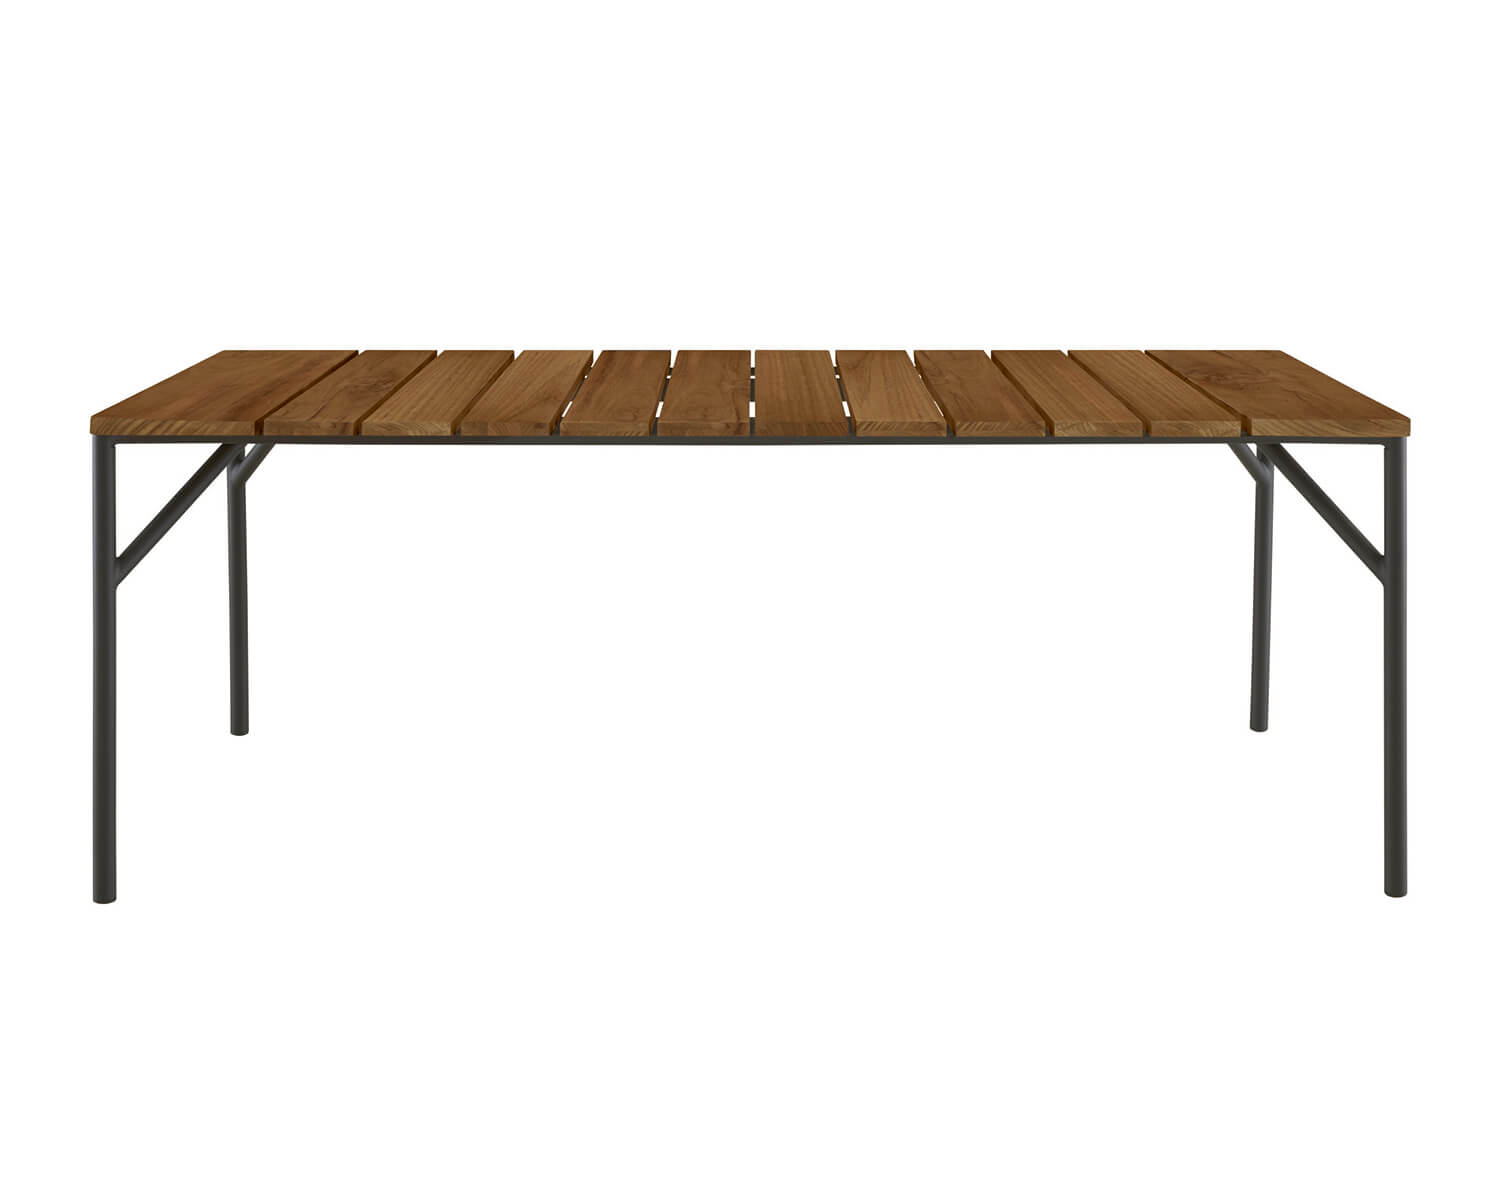 View of the Lapel rectangular table from the long side